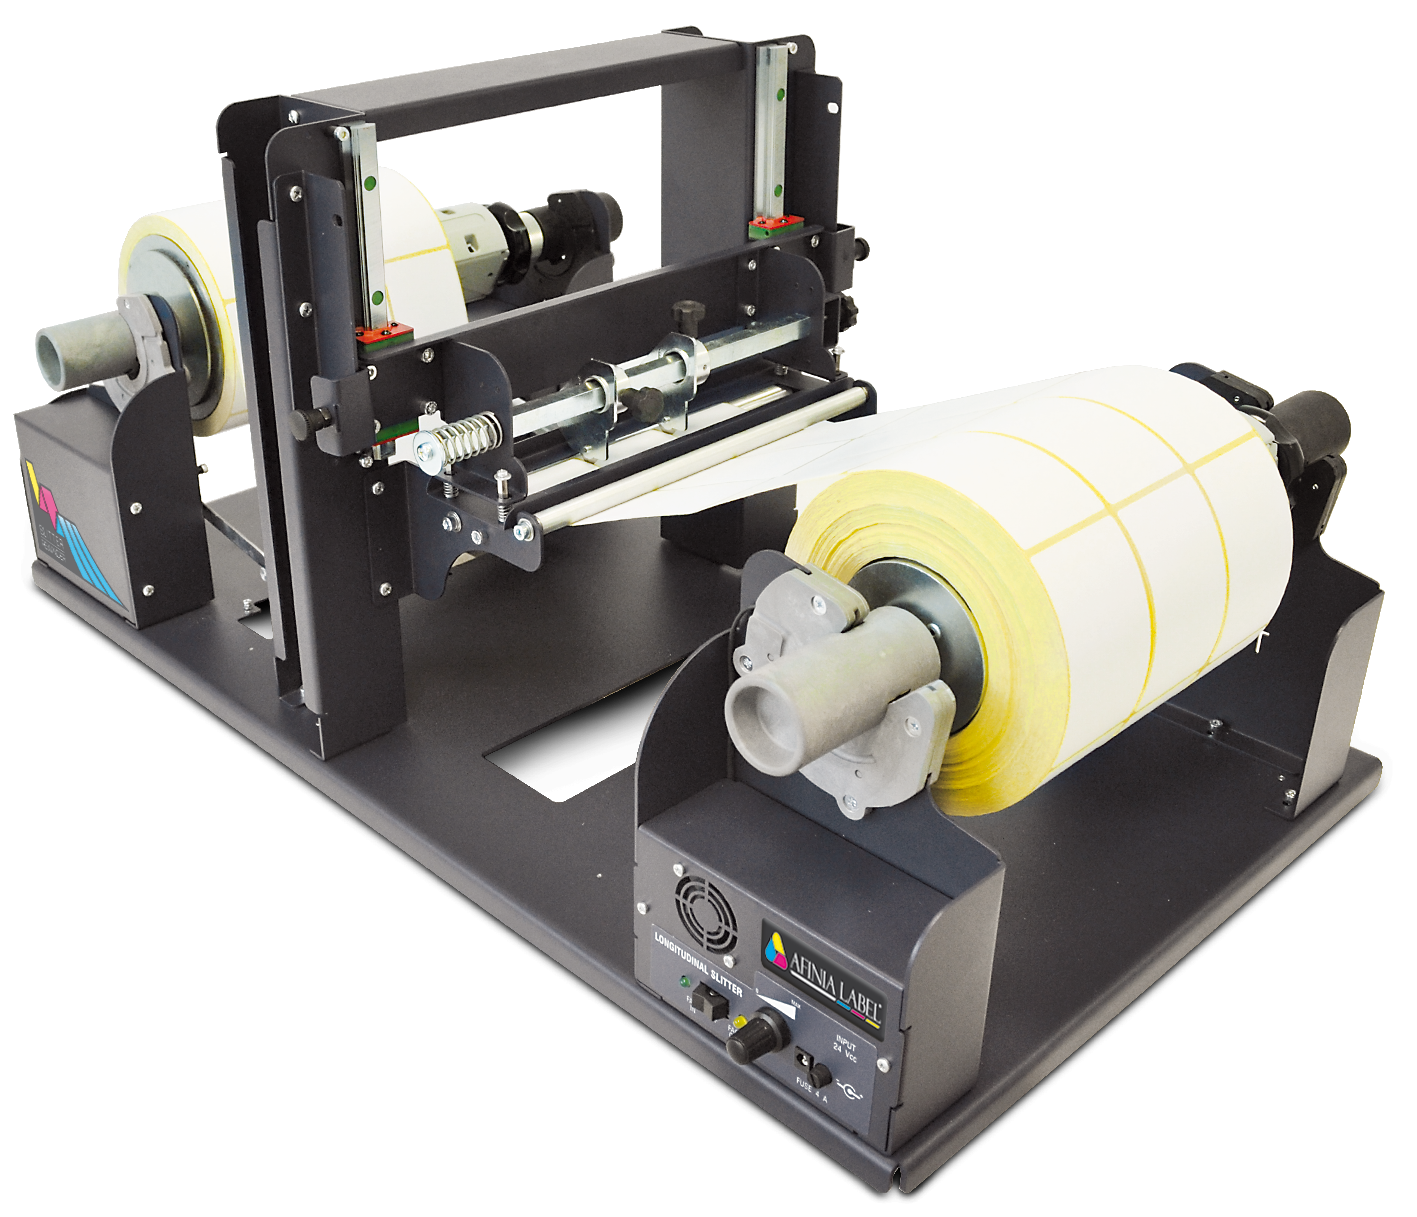 SR-100 Label Slitter and Rewinder from Afinia Label